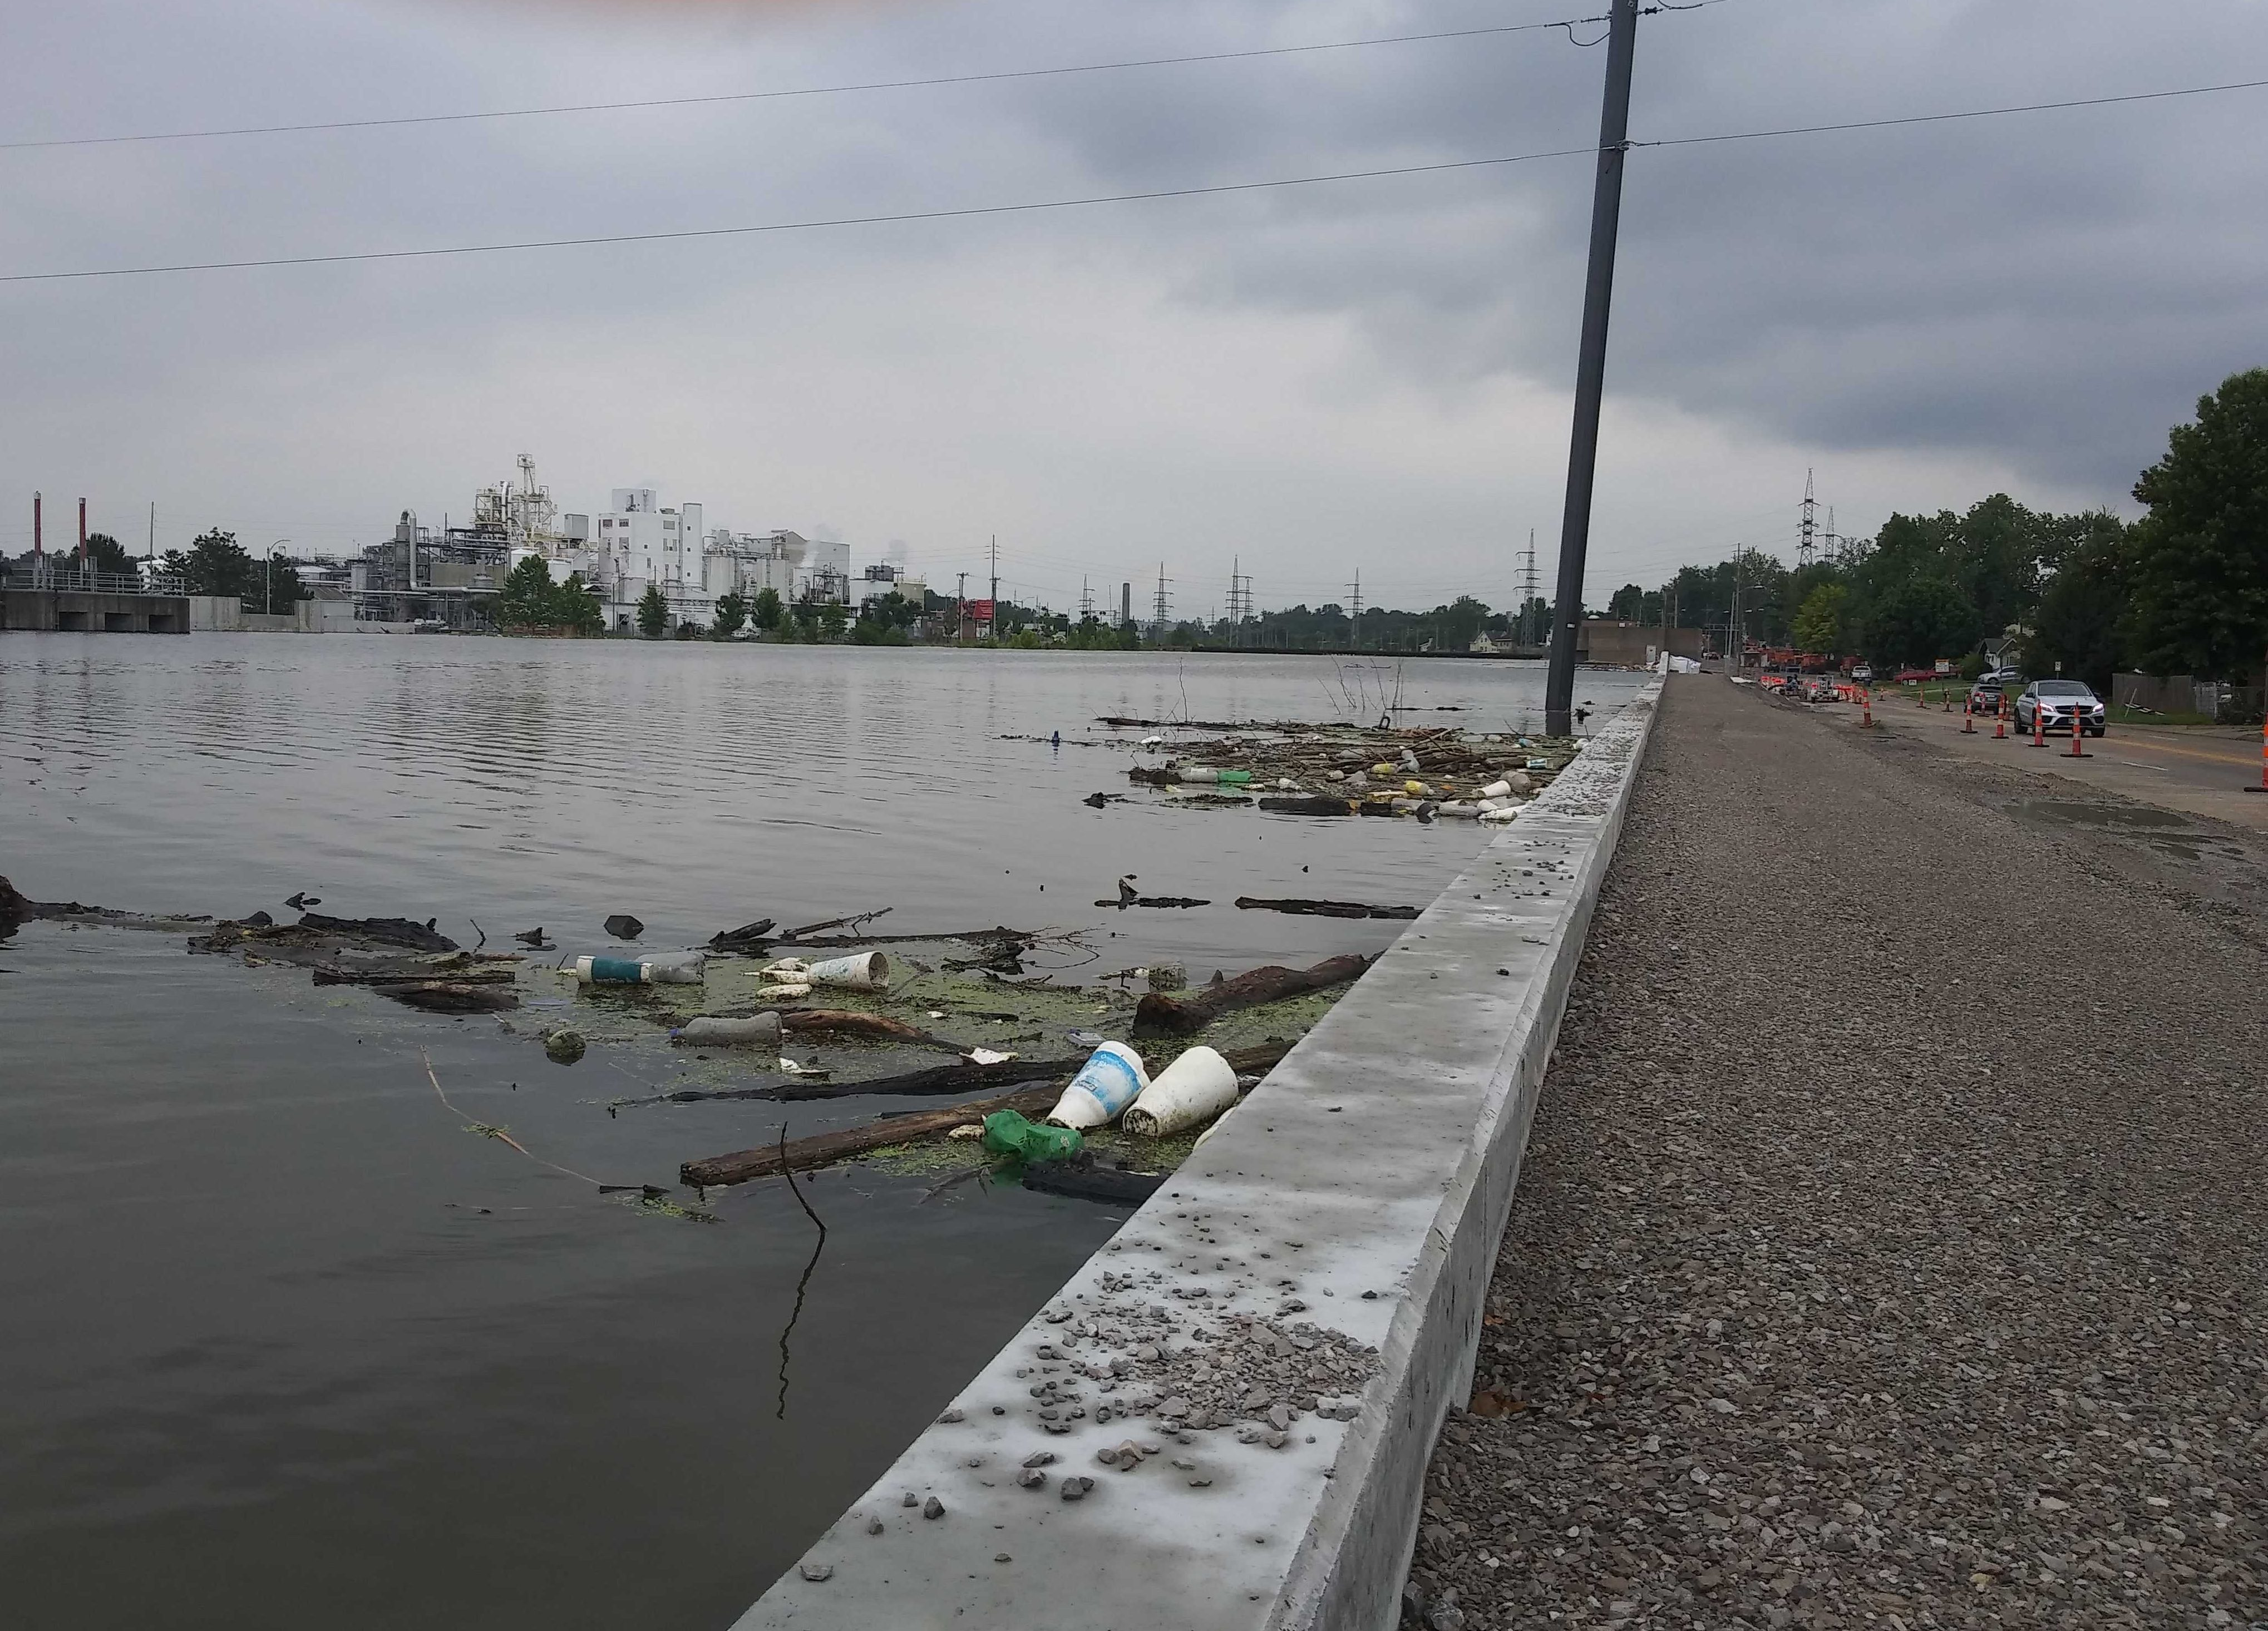 Little damage in city from River des Peres' cresting